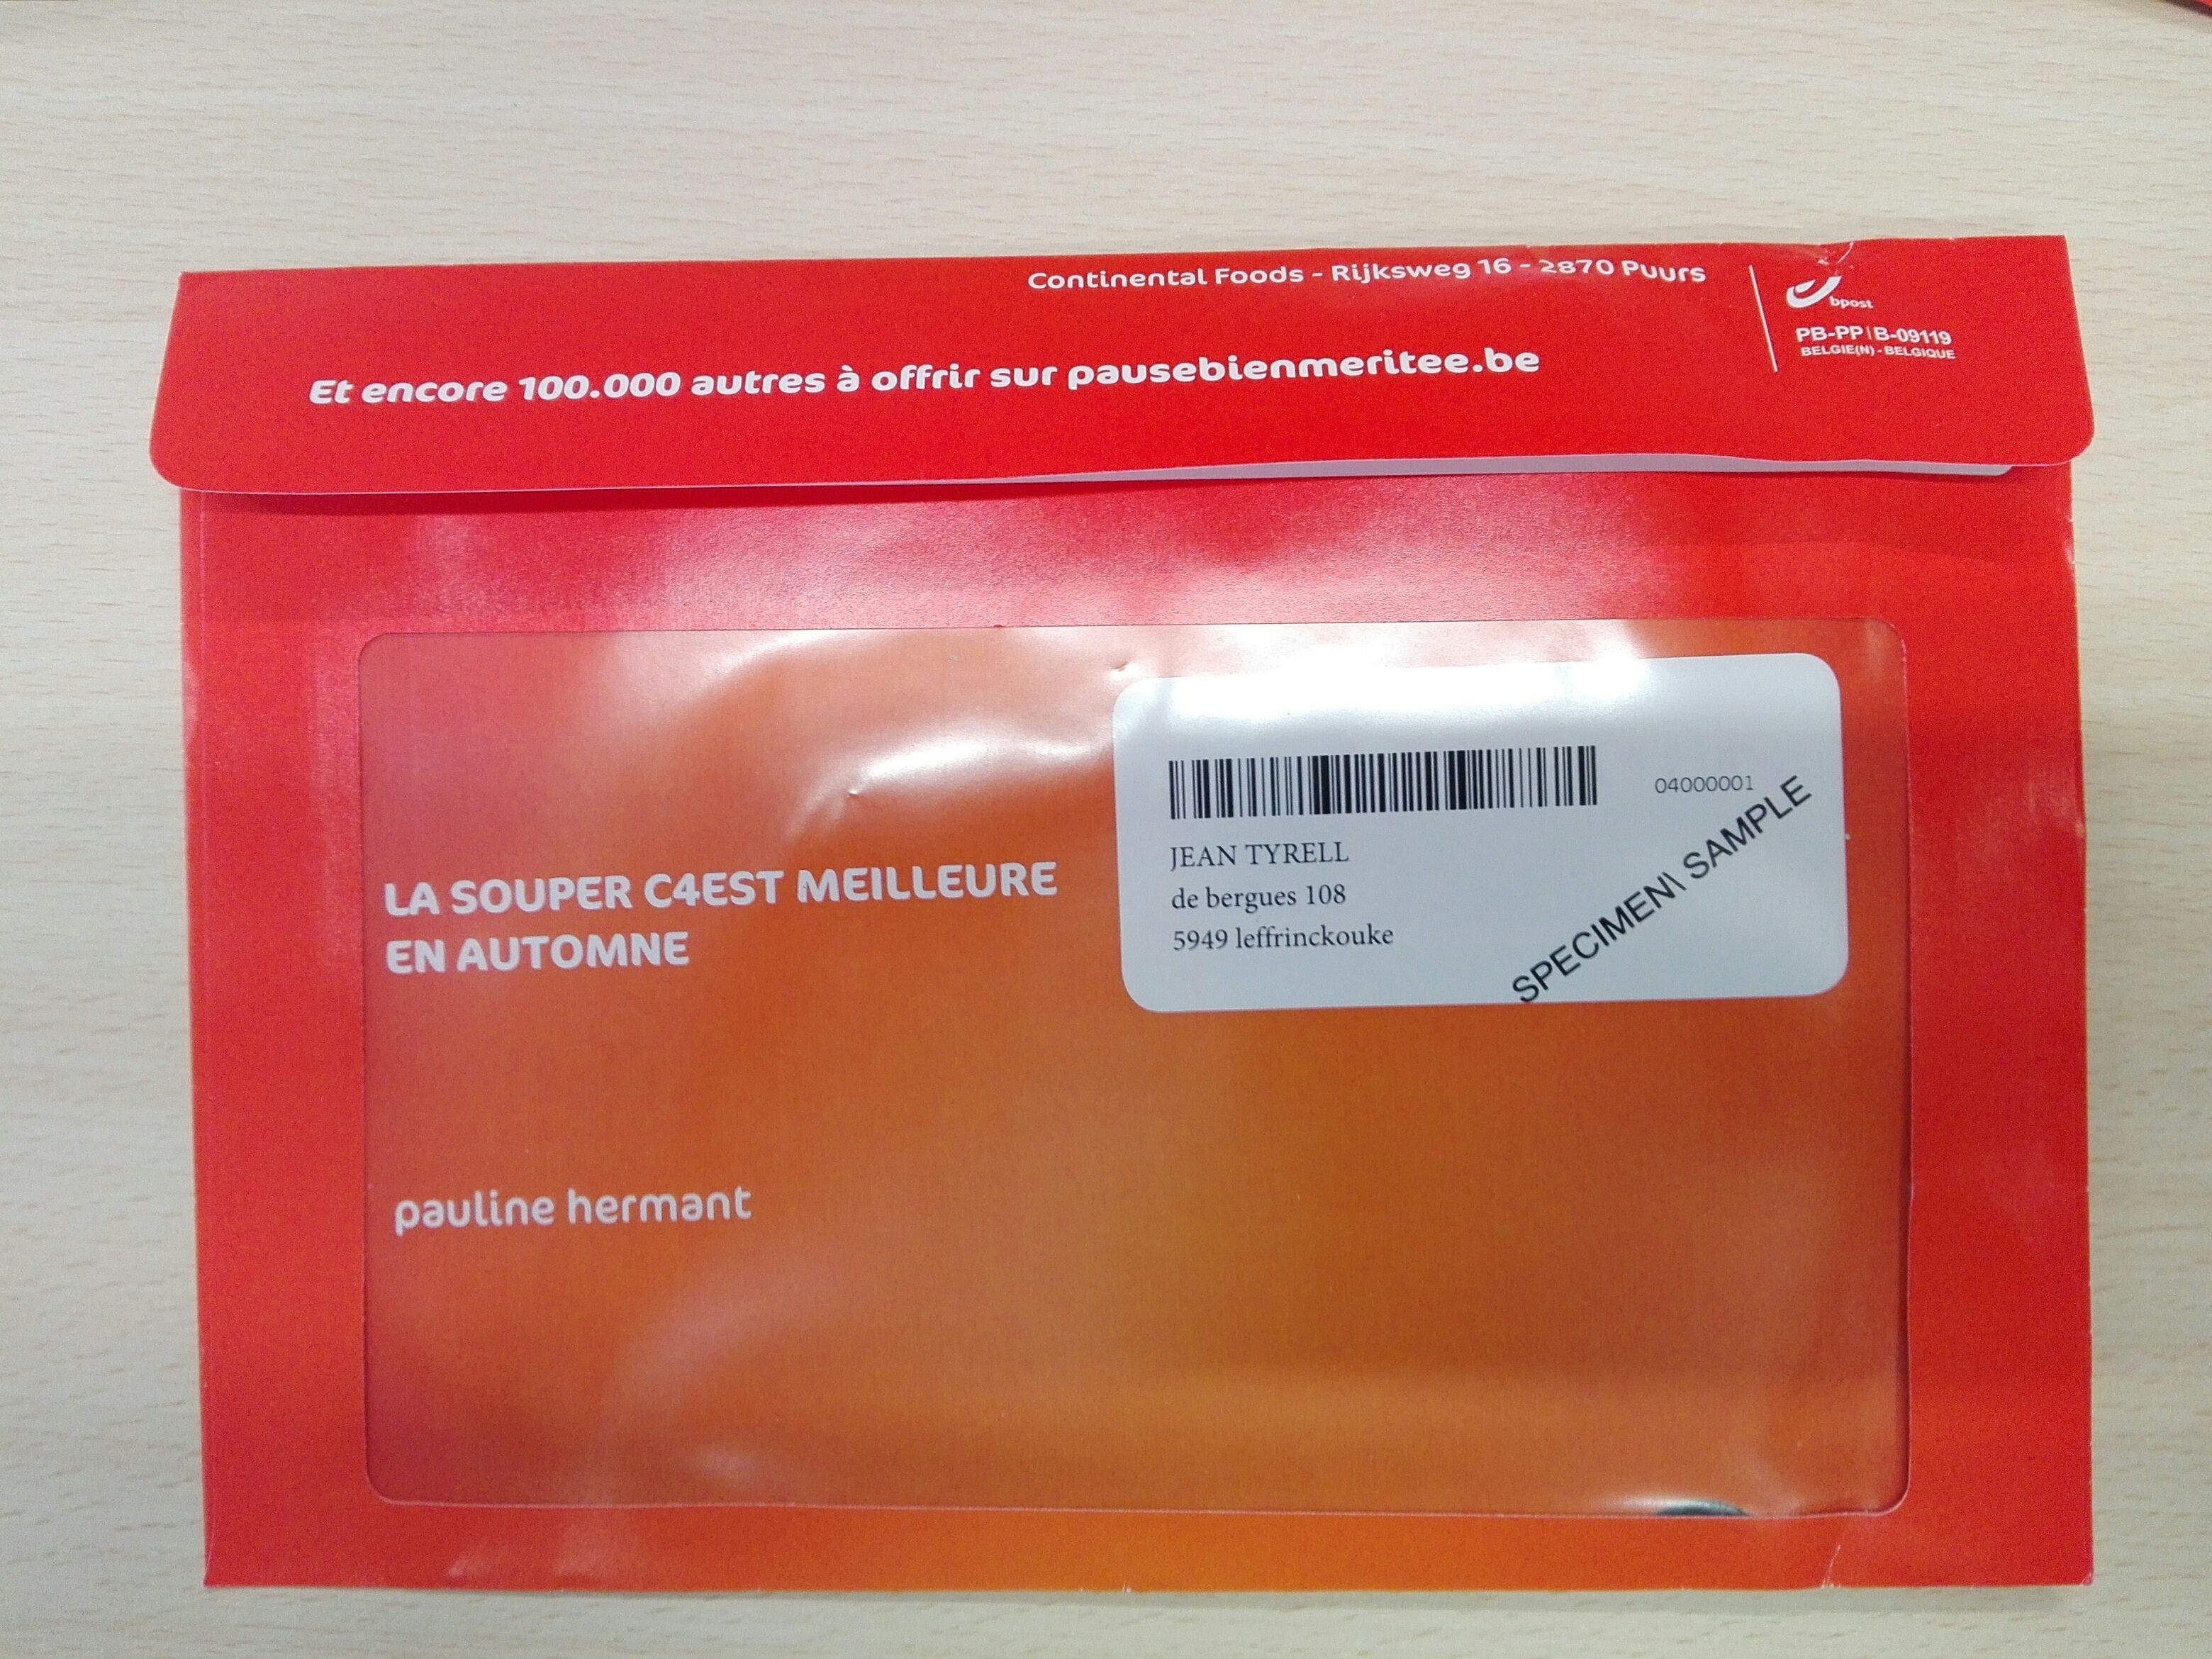 royco-acquistion-direct-mail-2